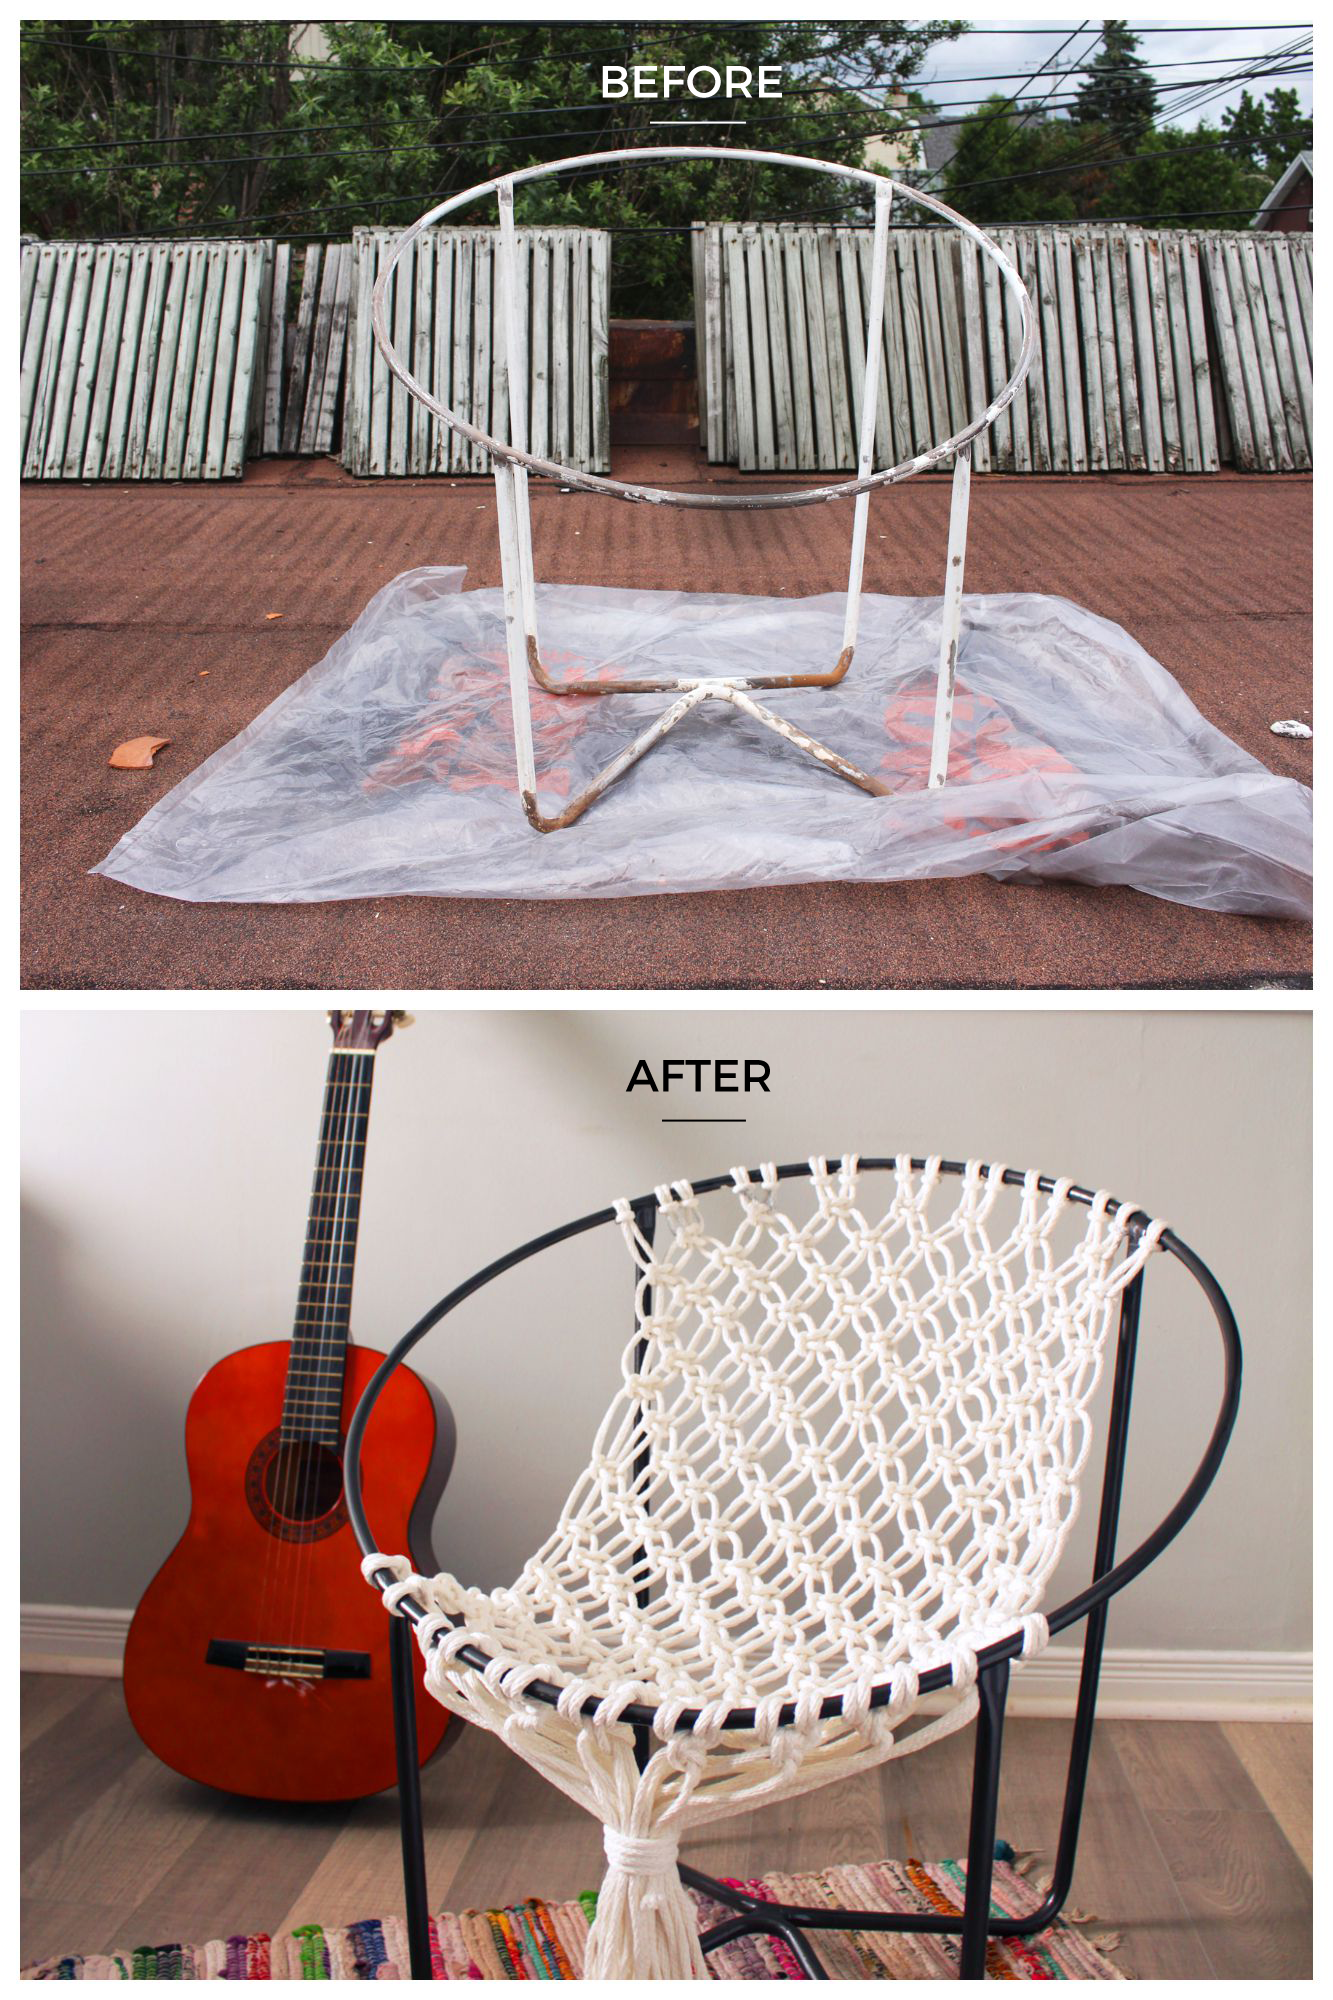 DIY Macrame Hammock Chair | Hammock chair, Balconies and ...